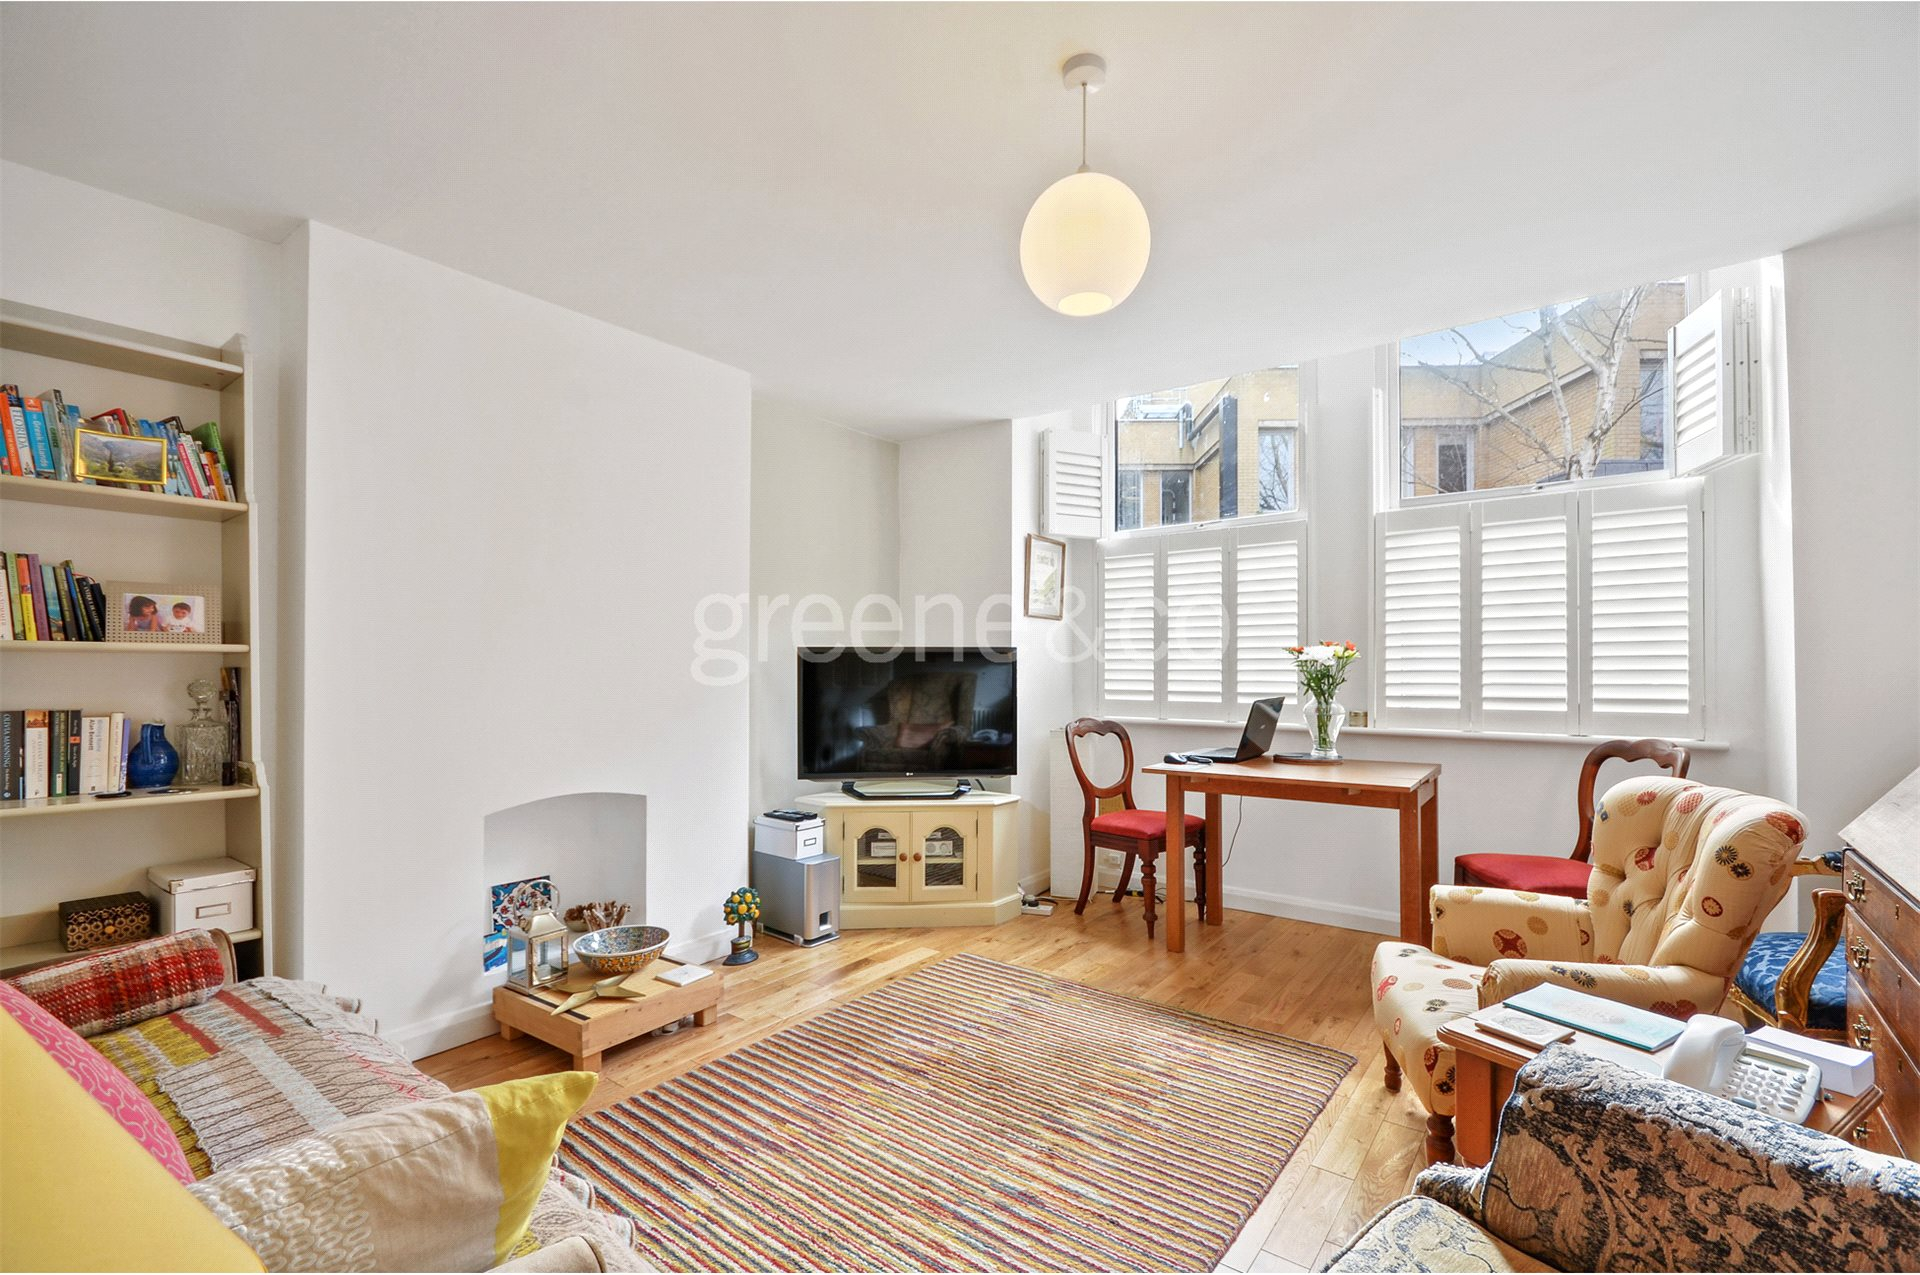 2 Bedrooms Flat for sale in Fleet Road, South End Green, London, NW3